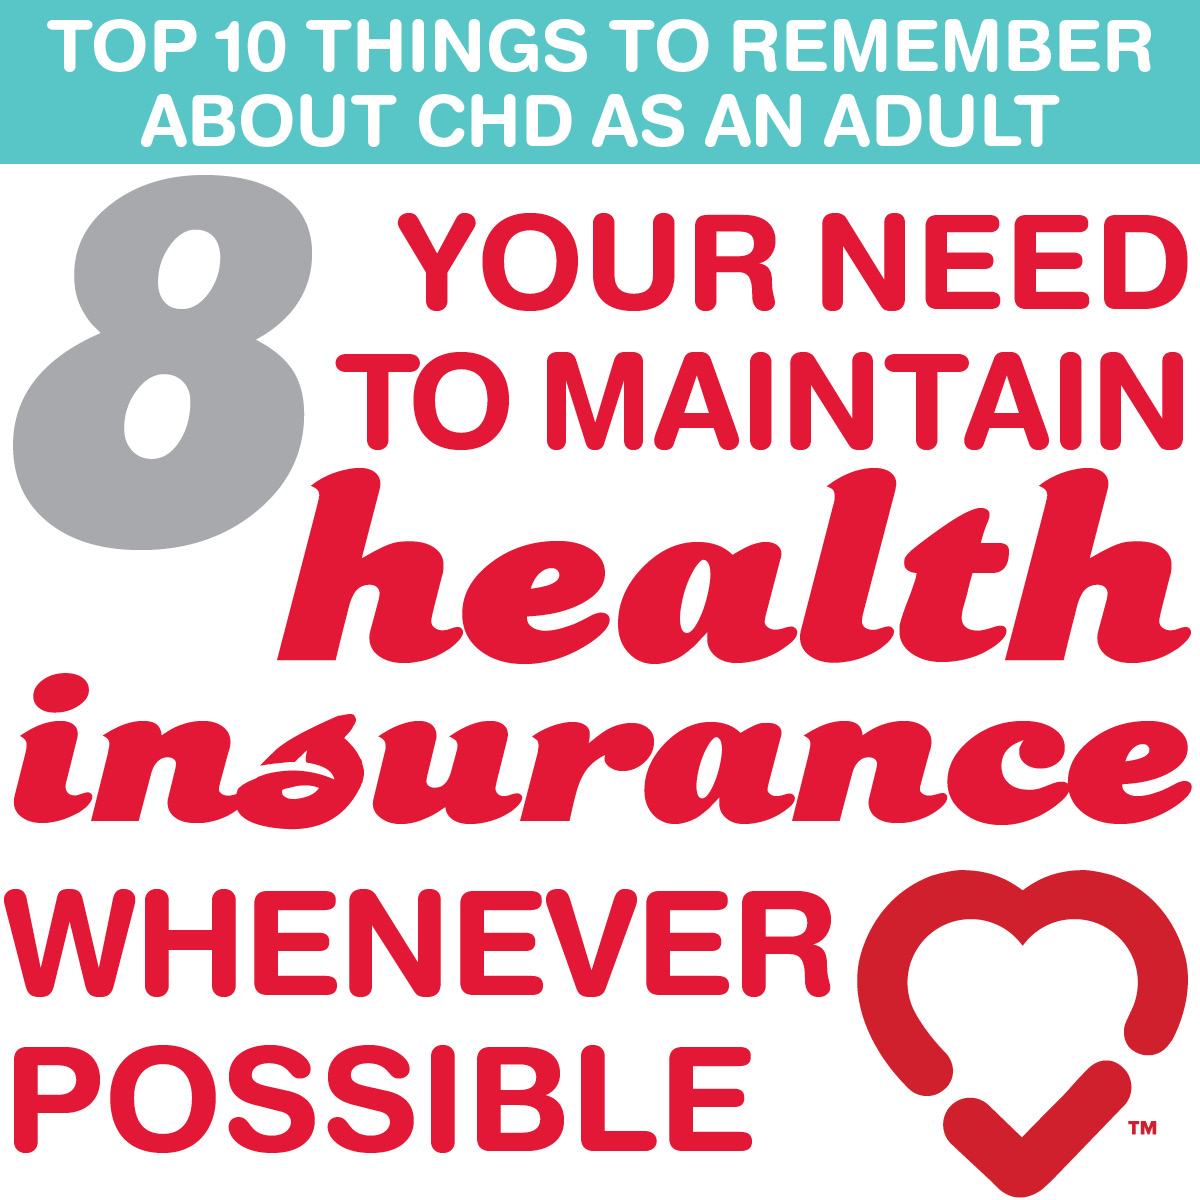 Fortunately At Least For The Time Being CHD Patients Can Remain On Their Parents Medical Insurance Until They Are 26 Years Of Age